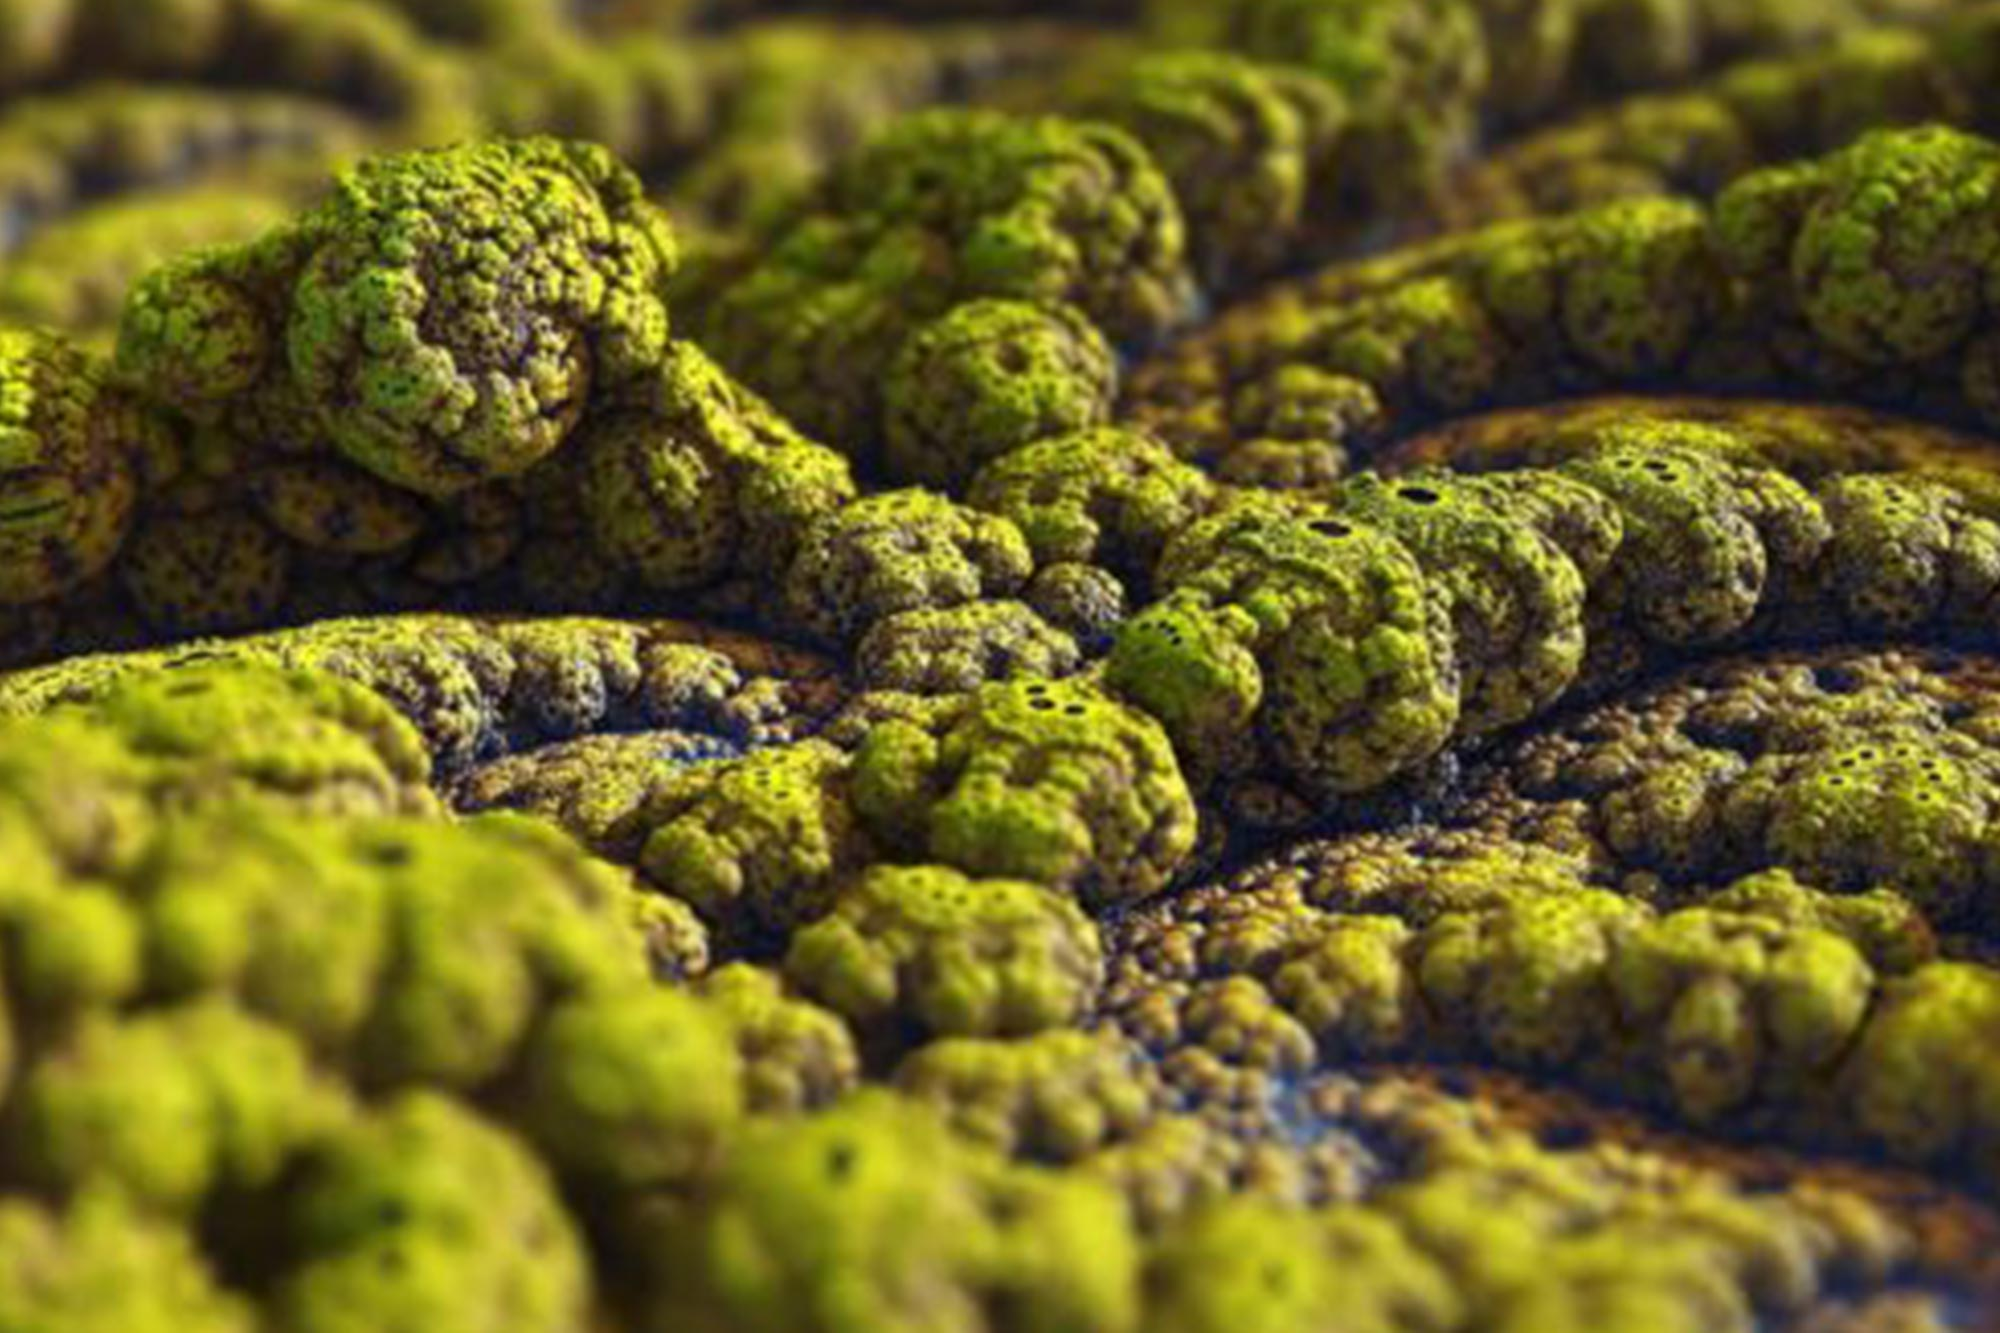 Microscopic View of Mold | Dr. Crawlspace